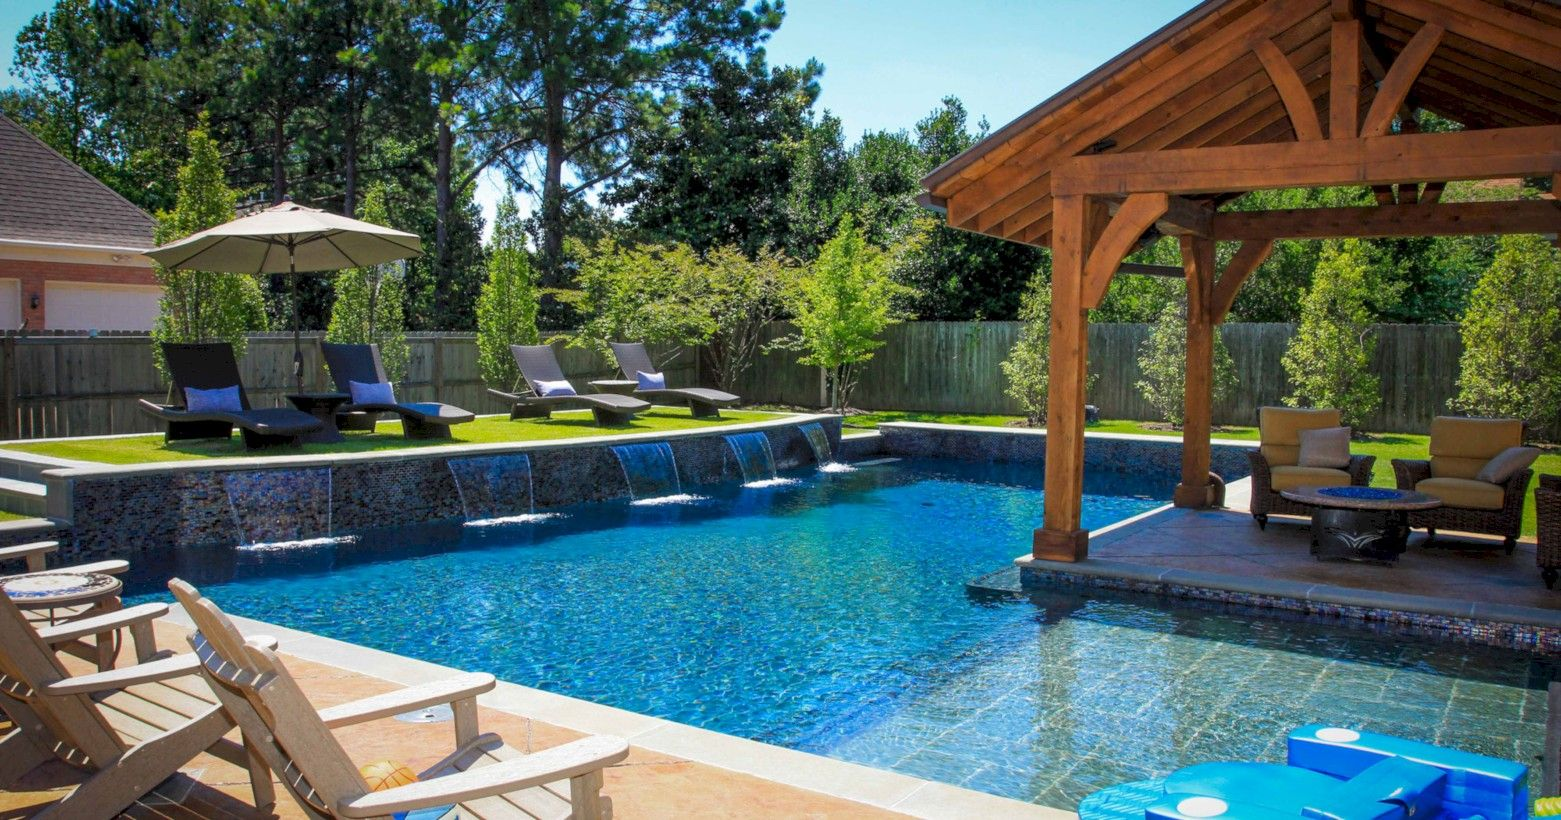 67 Great Small Swimming Pools Ideas Small Backyard Design